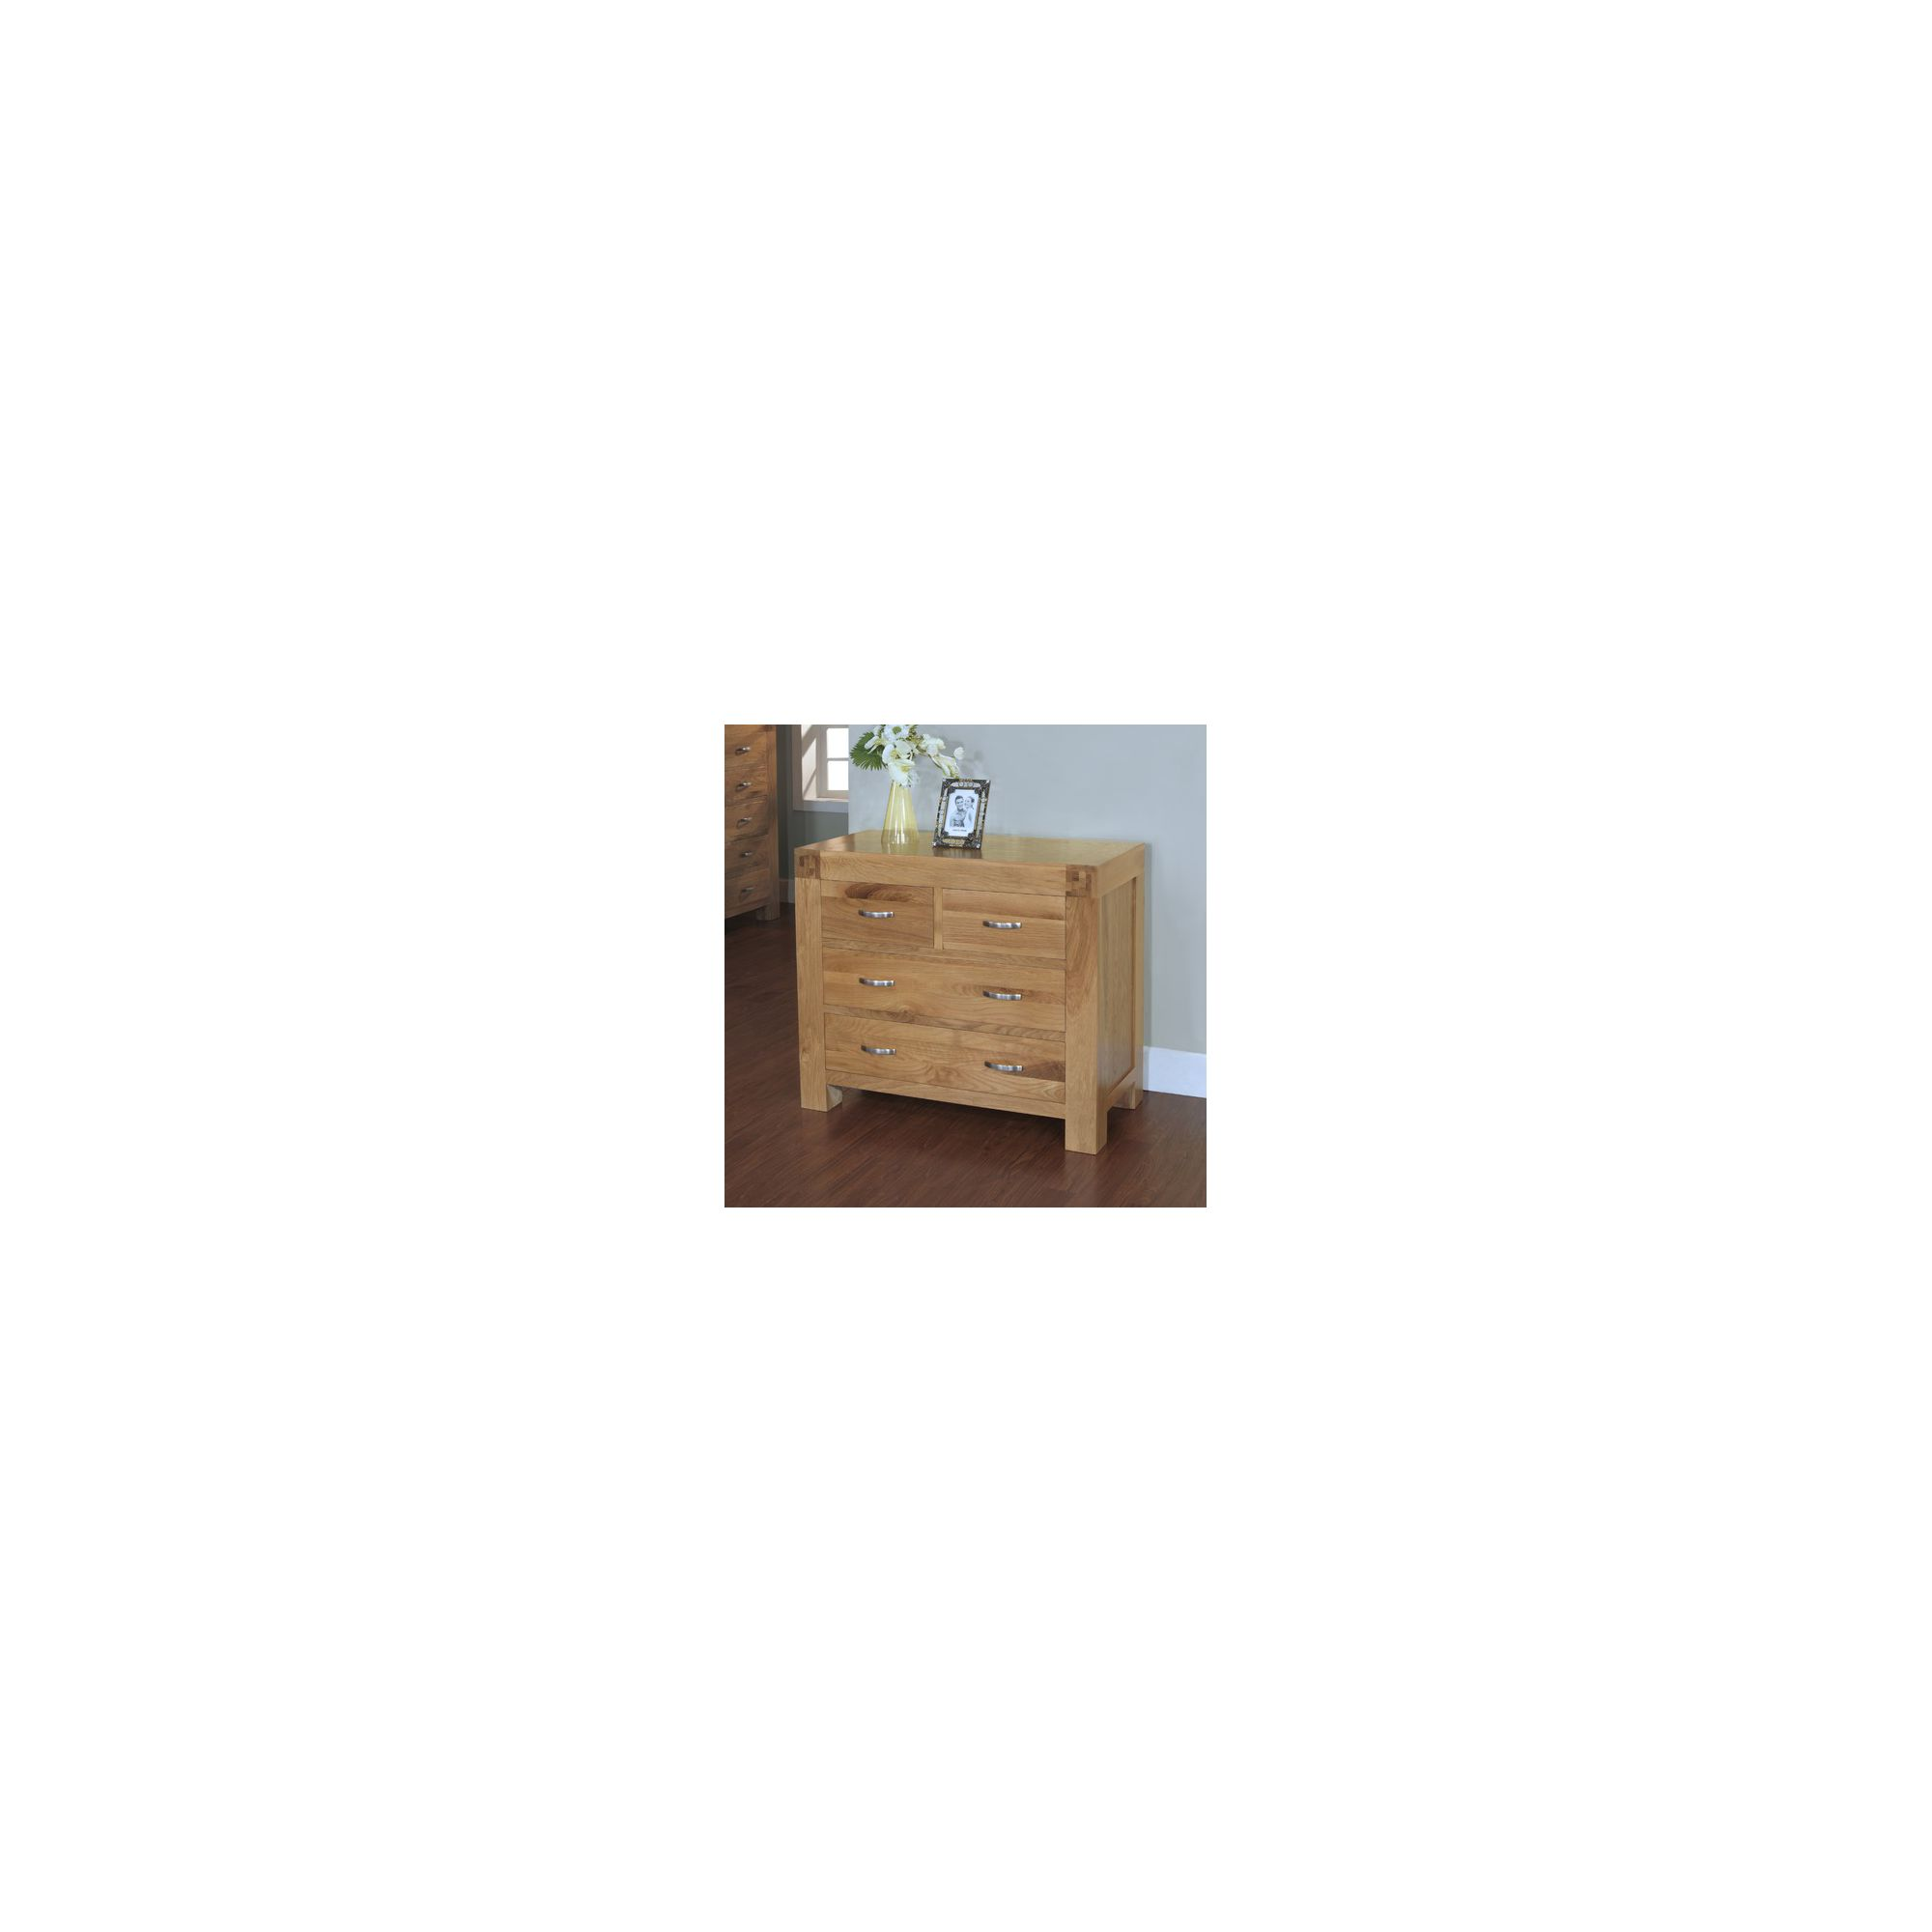 Hawkshead Rustic Oak Blonde 2 Over 2 Drawer Chest at Tesco Direct